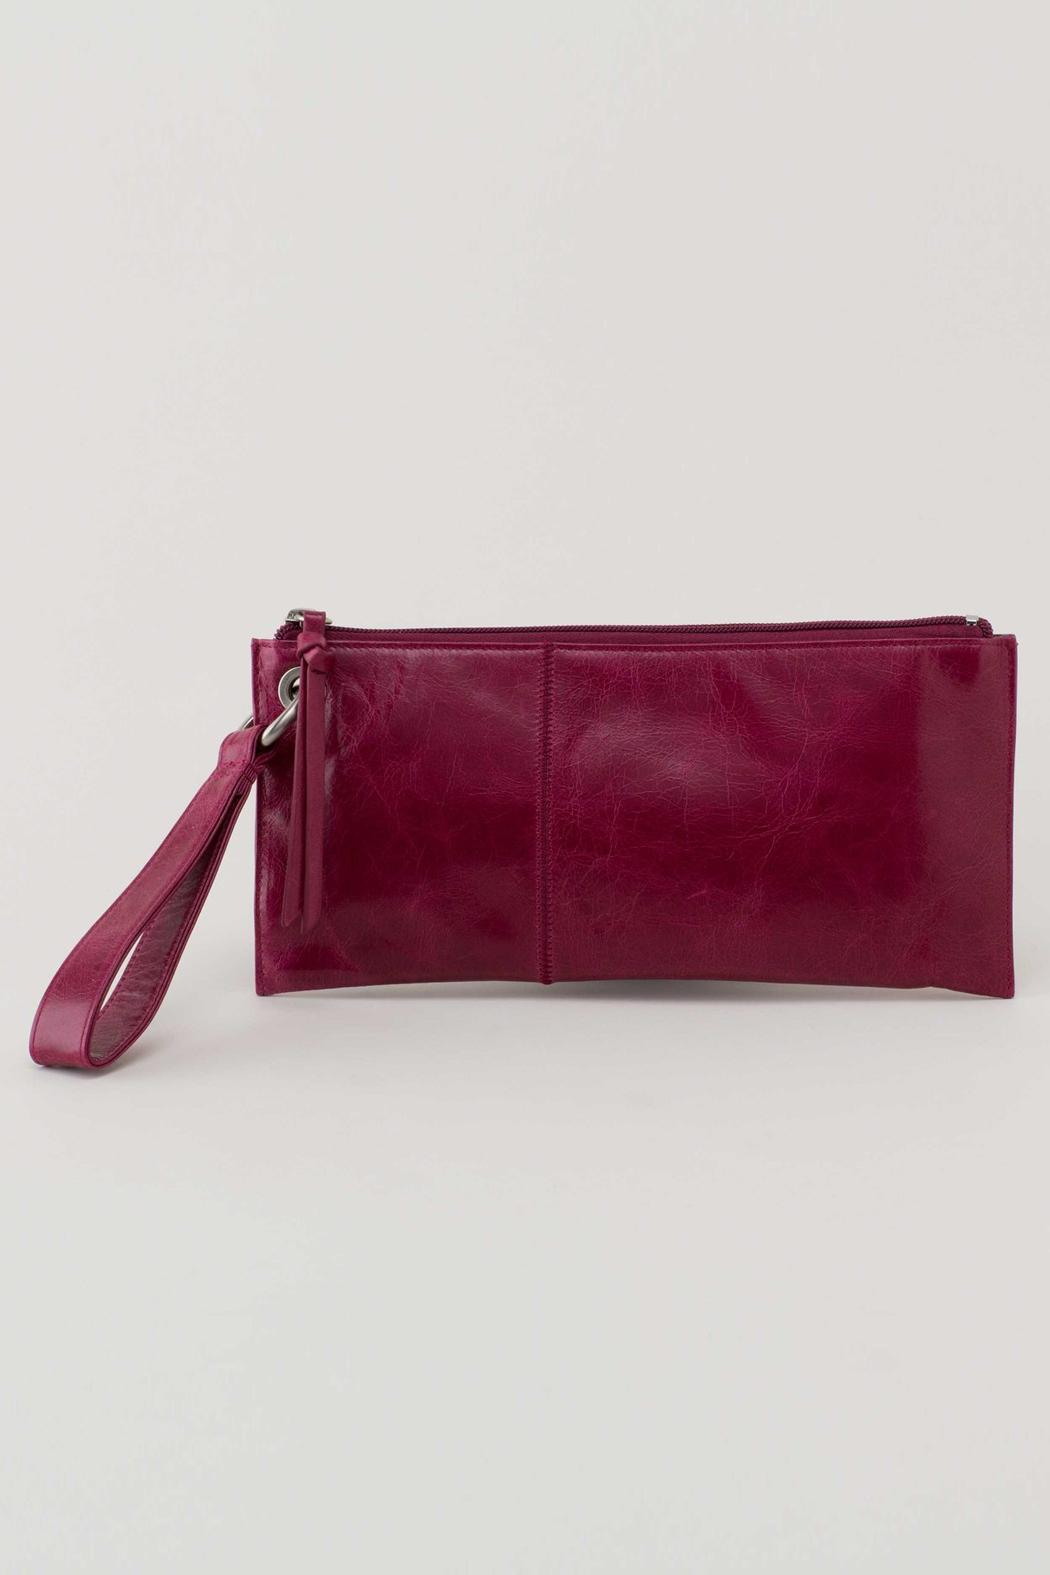 VIDA Statement Clutch - Pink and Red Clutch by VIDA 4fmFf